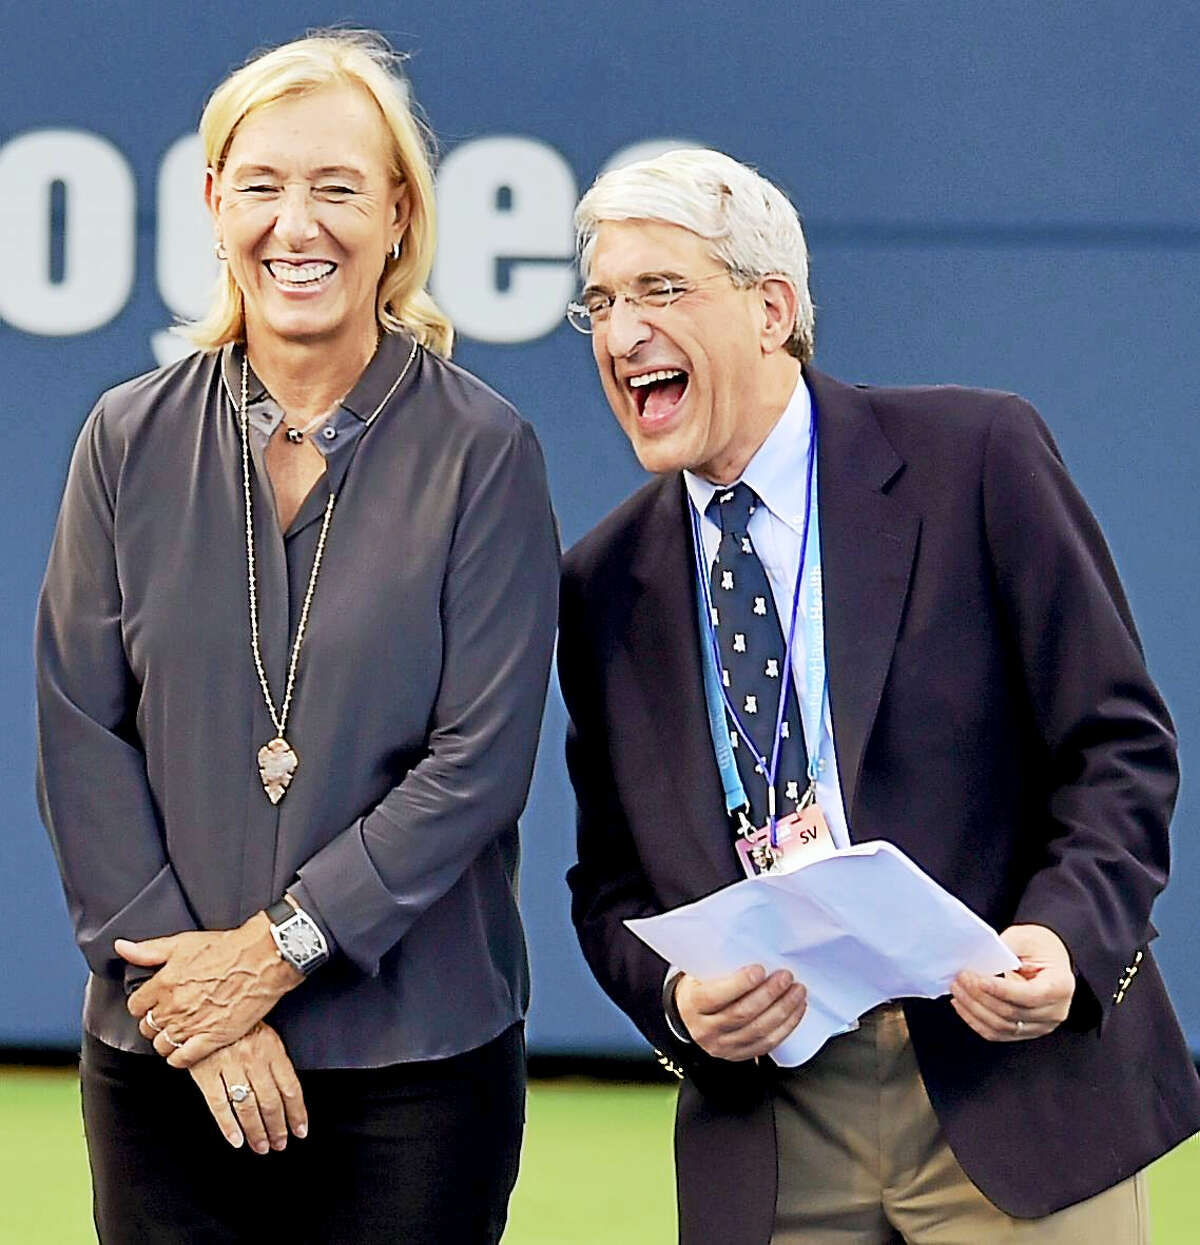 (Peter Hvizdak / Hearst Connecticut Media) New Haven,Connecticut: Monday, August 21, 2017. Legendary tennis player Martini Navratilova and Yale University President Peter Salovey share a light moment at the start of the Connecticut Open 20th Anniversary Celebration Opening Ceremony Monday evening at the Connecticut Tennis Center.